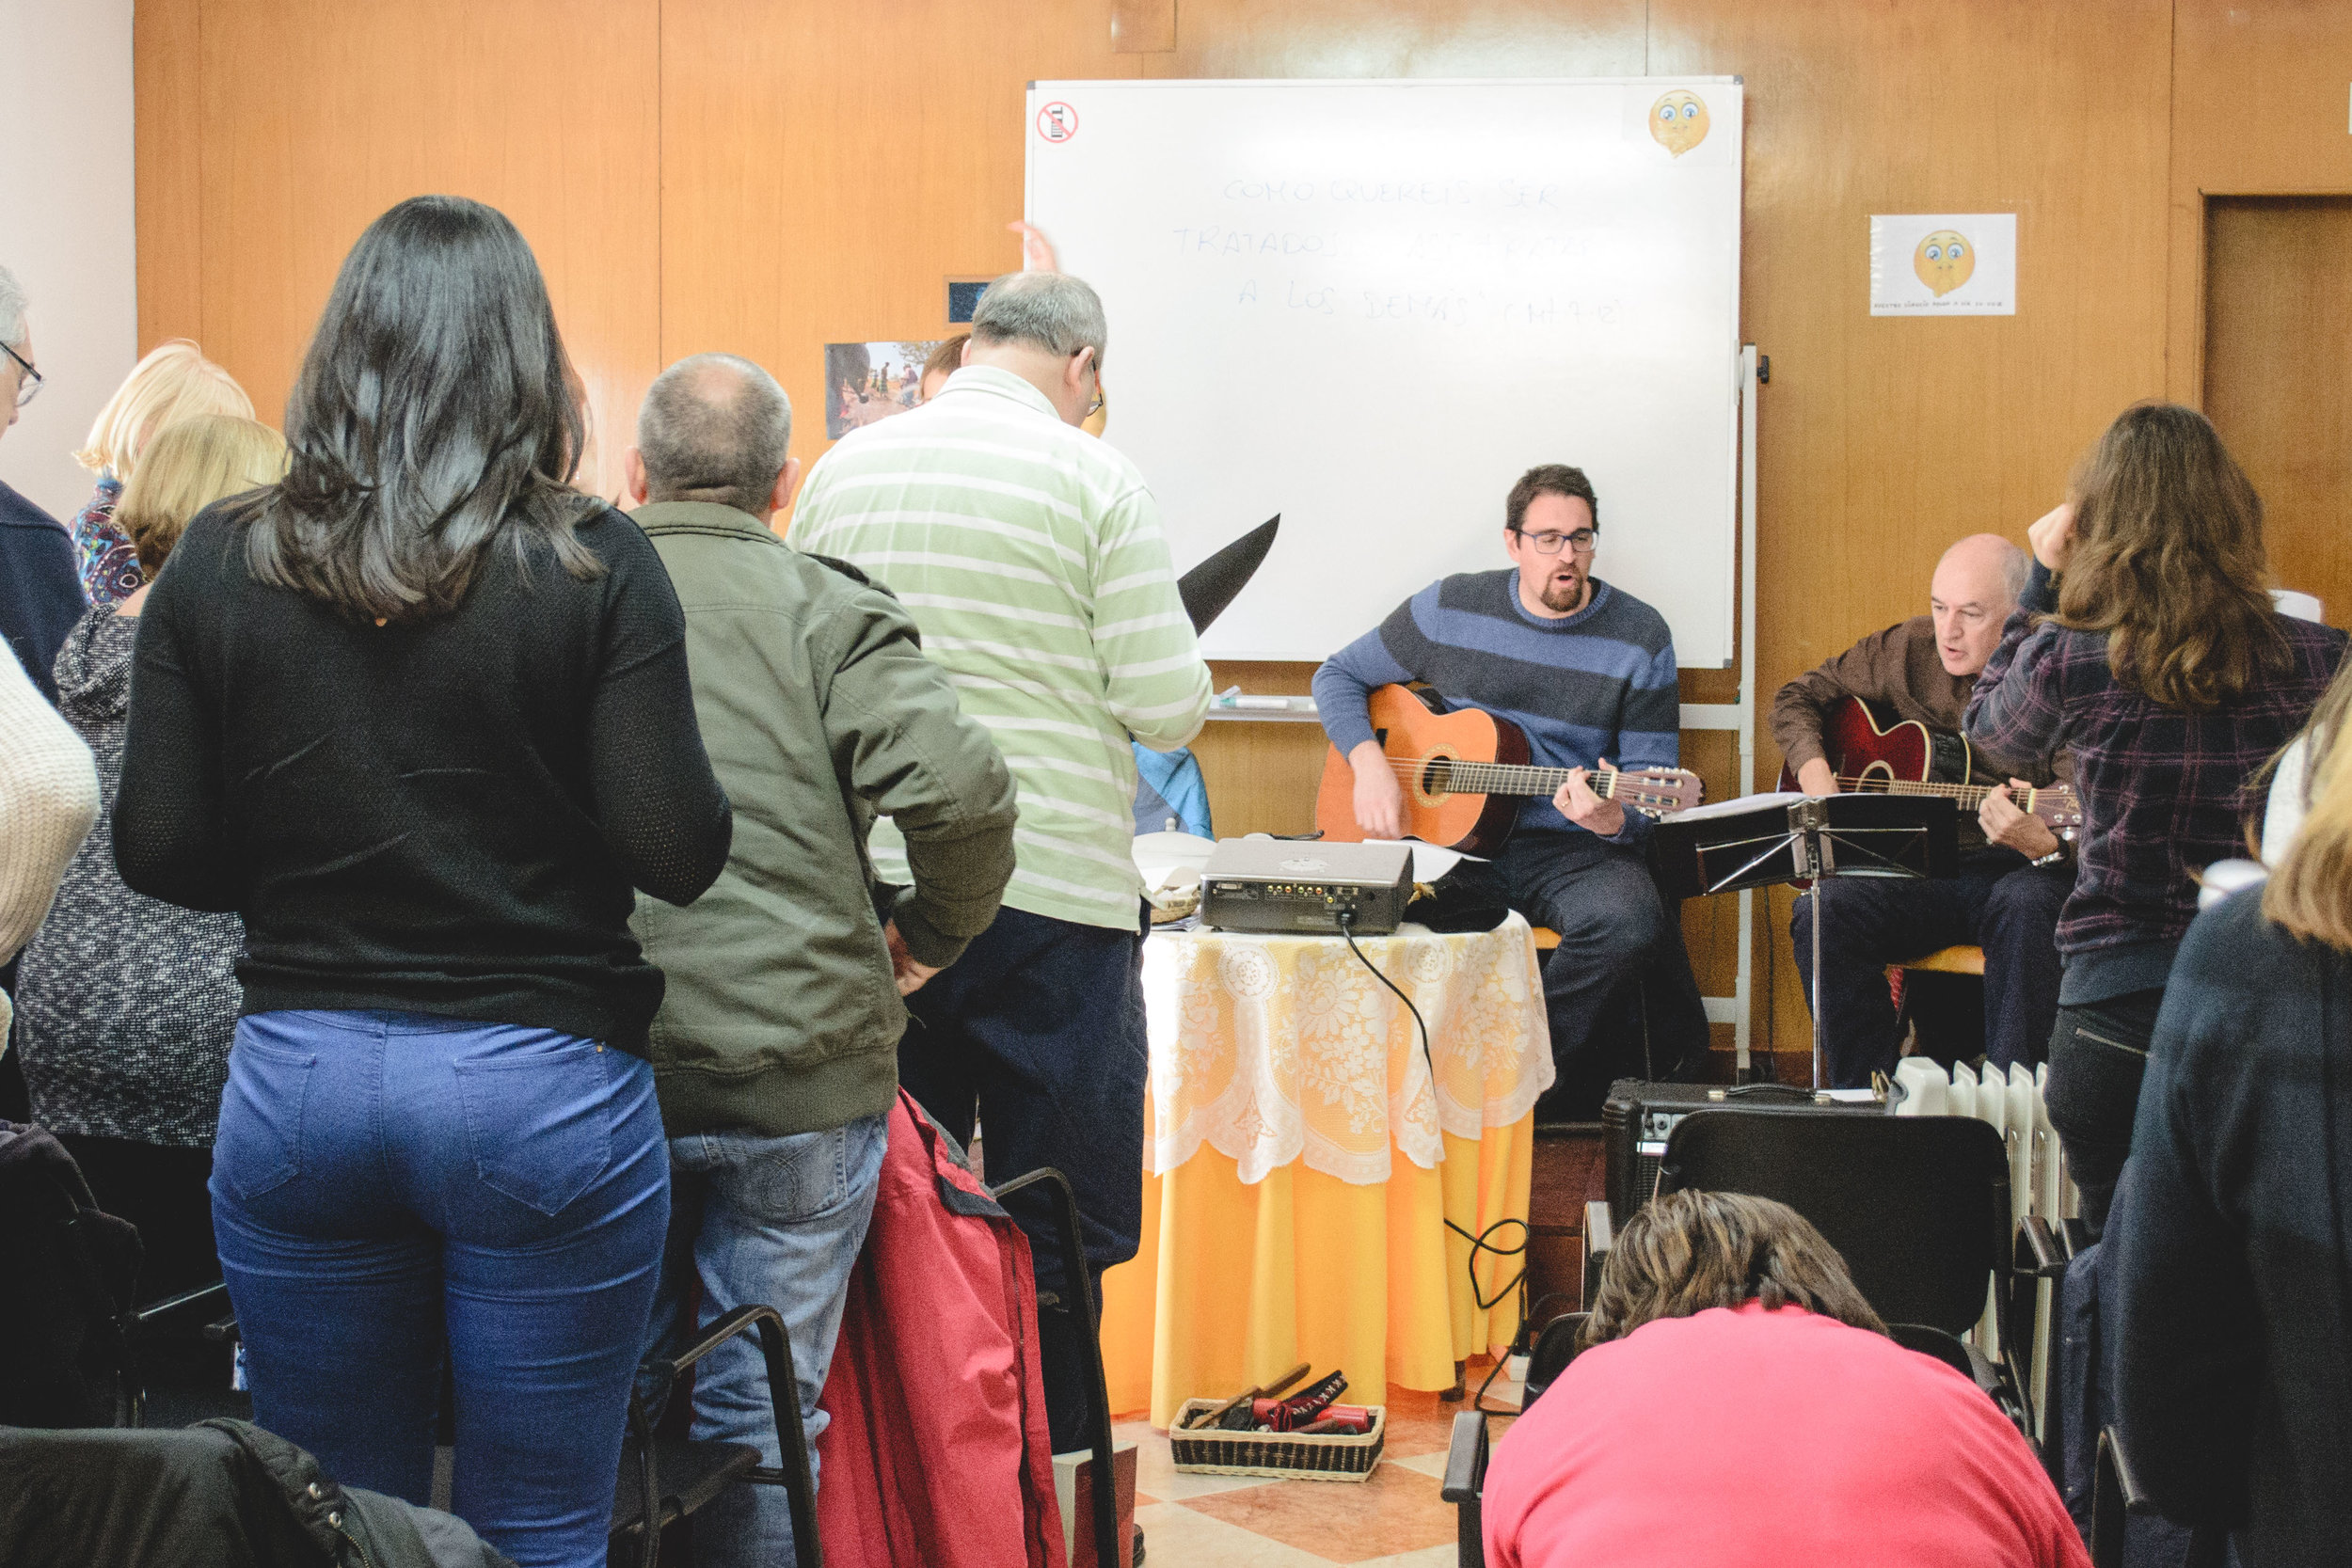 The Sunday-morning worship service in Barcelona -- full of passion and love